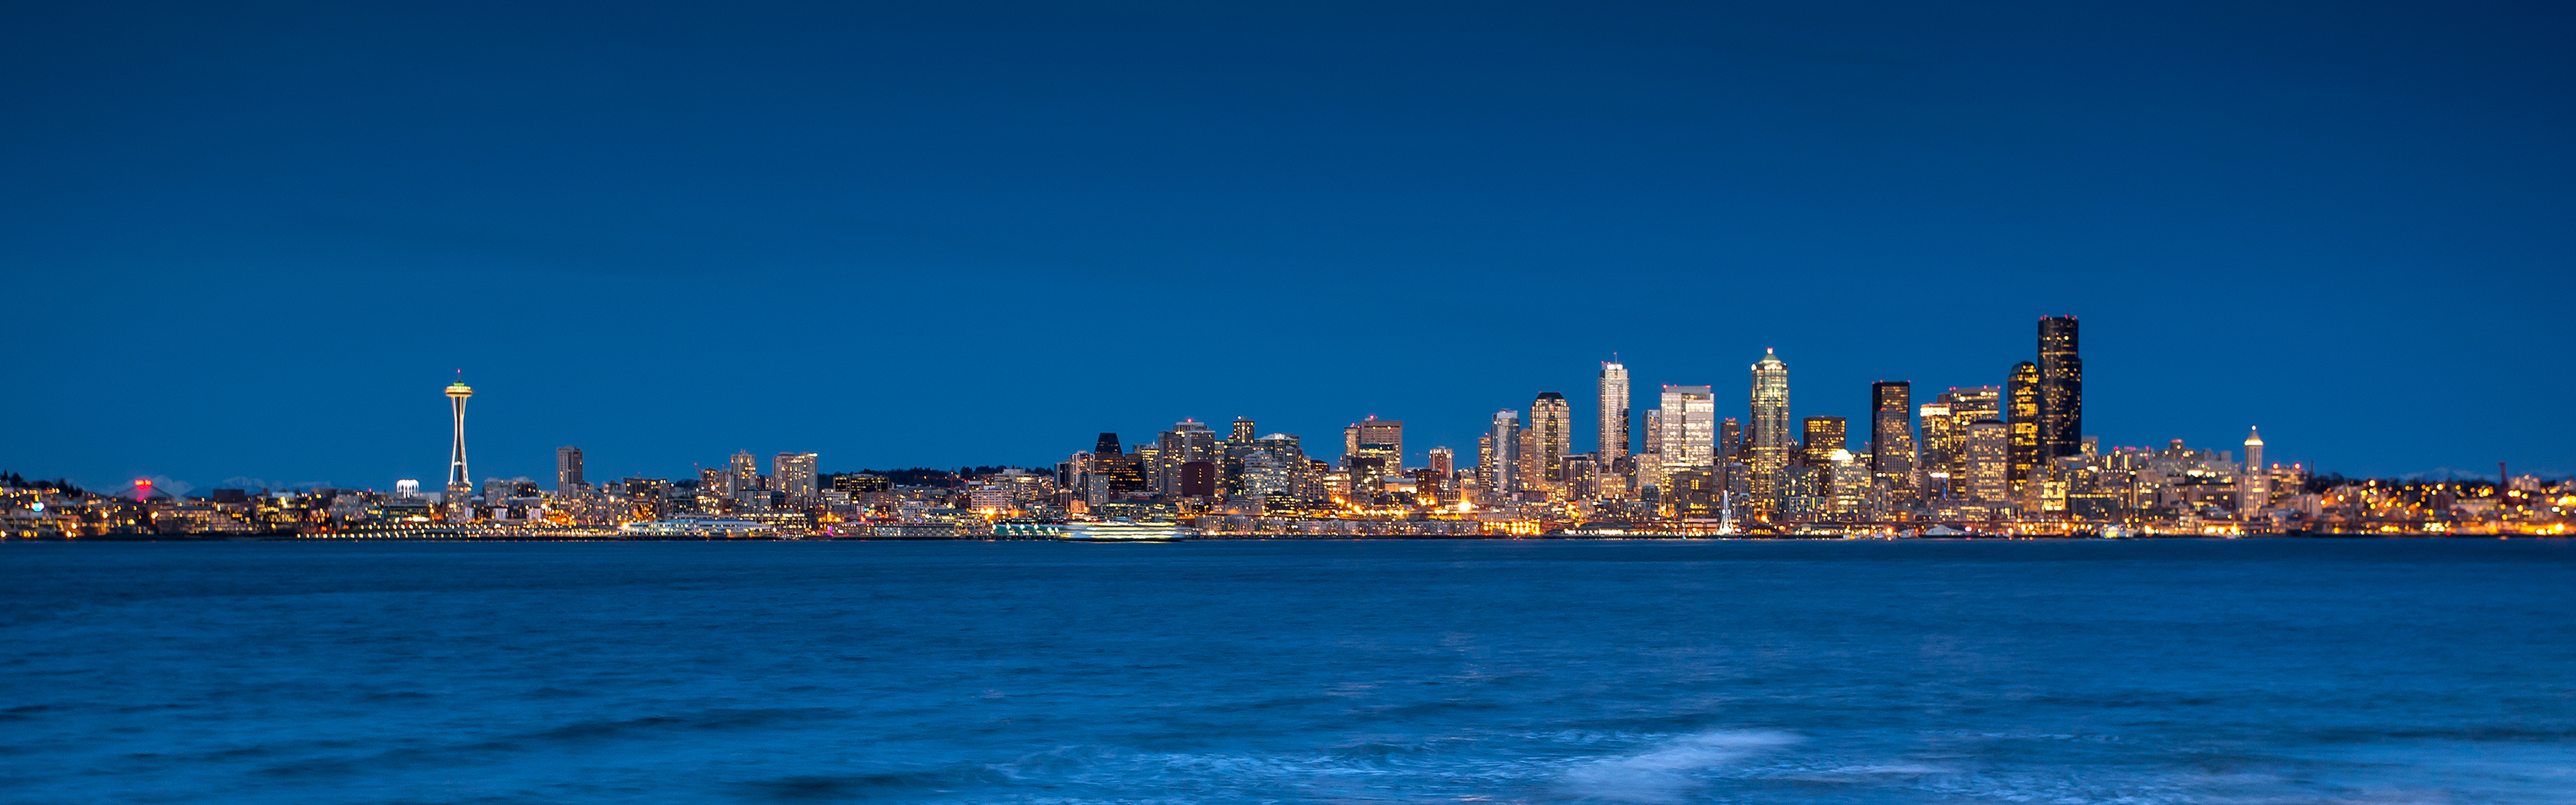 seattle from the beach by jeffery hayes april 13th 2013 seattle just 3360x1050